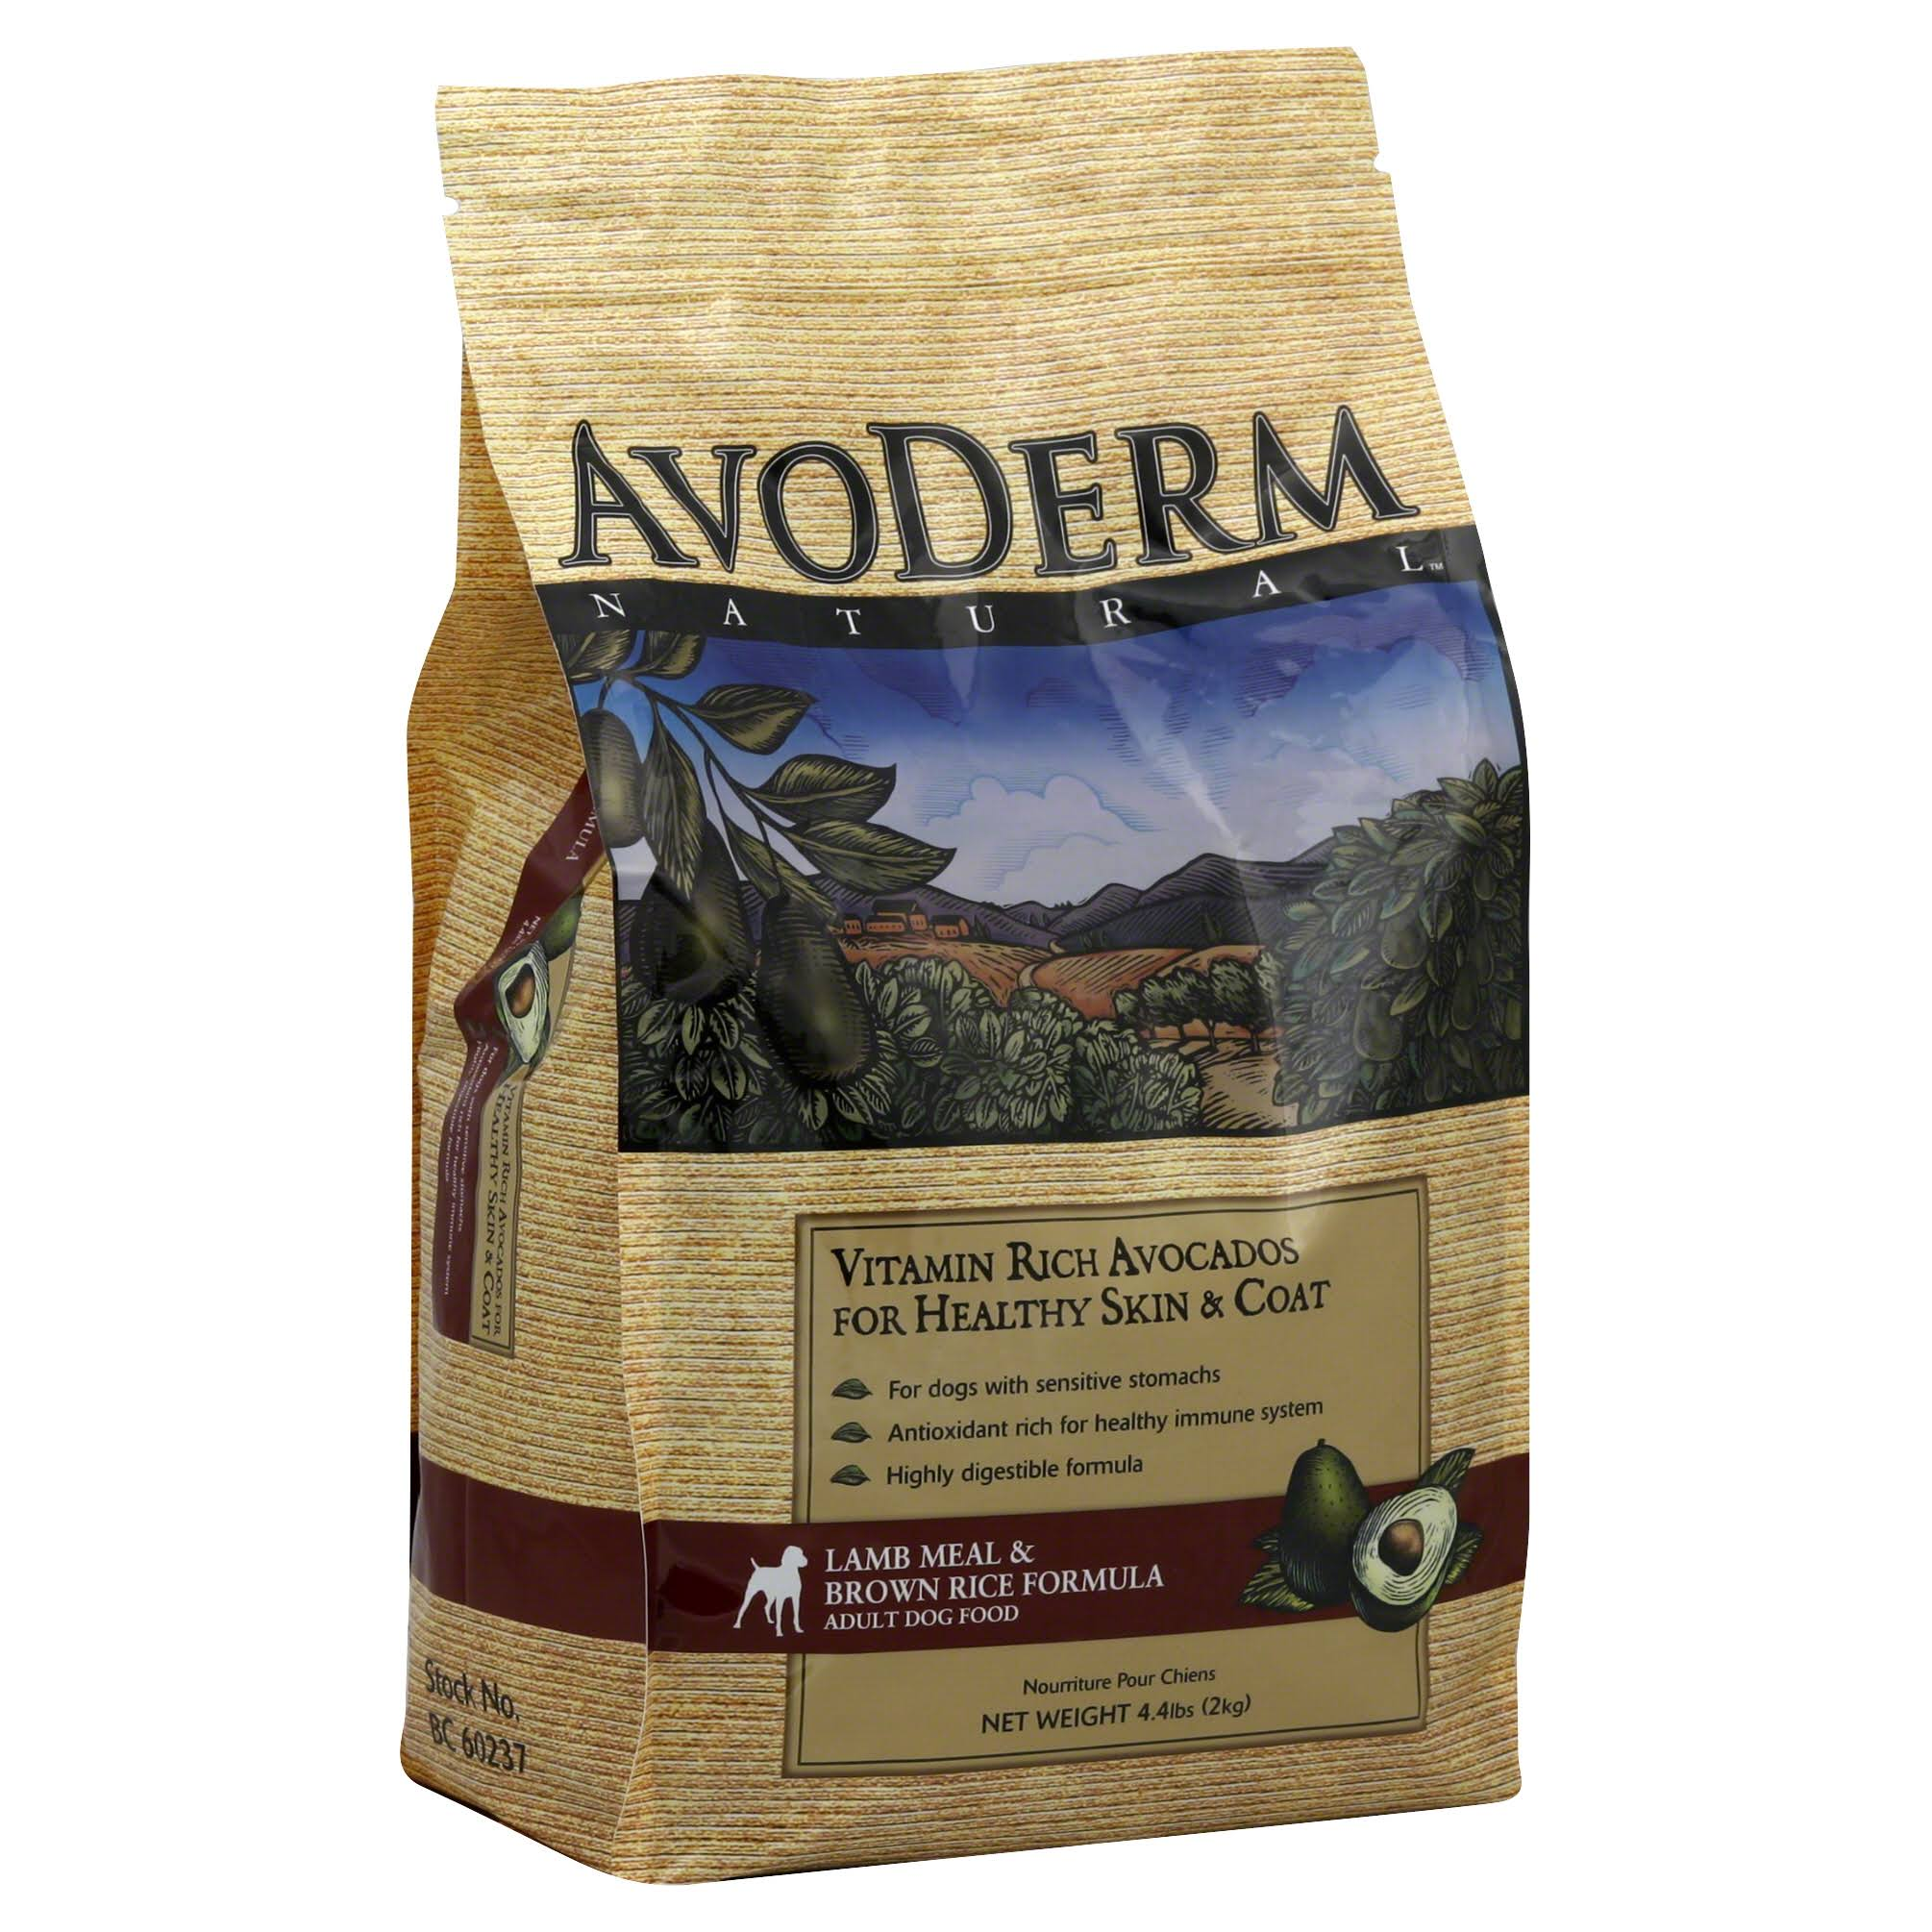 AvoDerm Natural Lamb Meal and Brown Rice Formula Adult Dog Food - 4.4lb